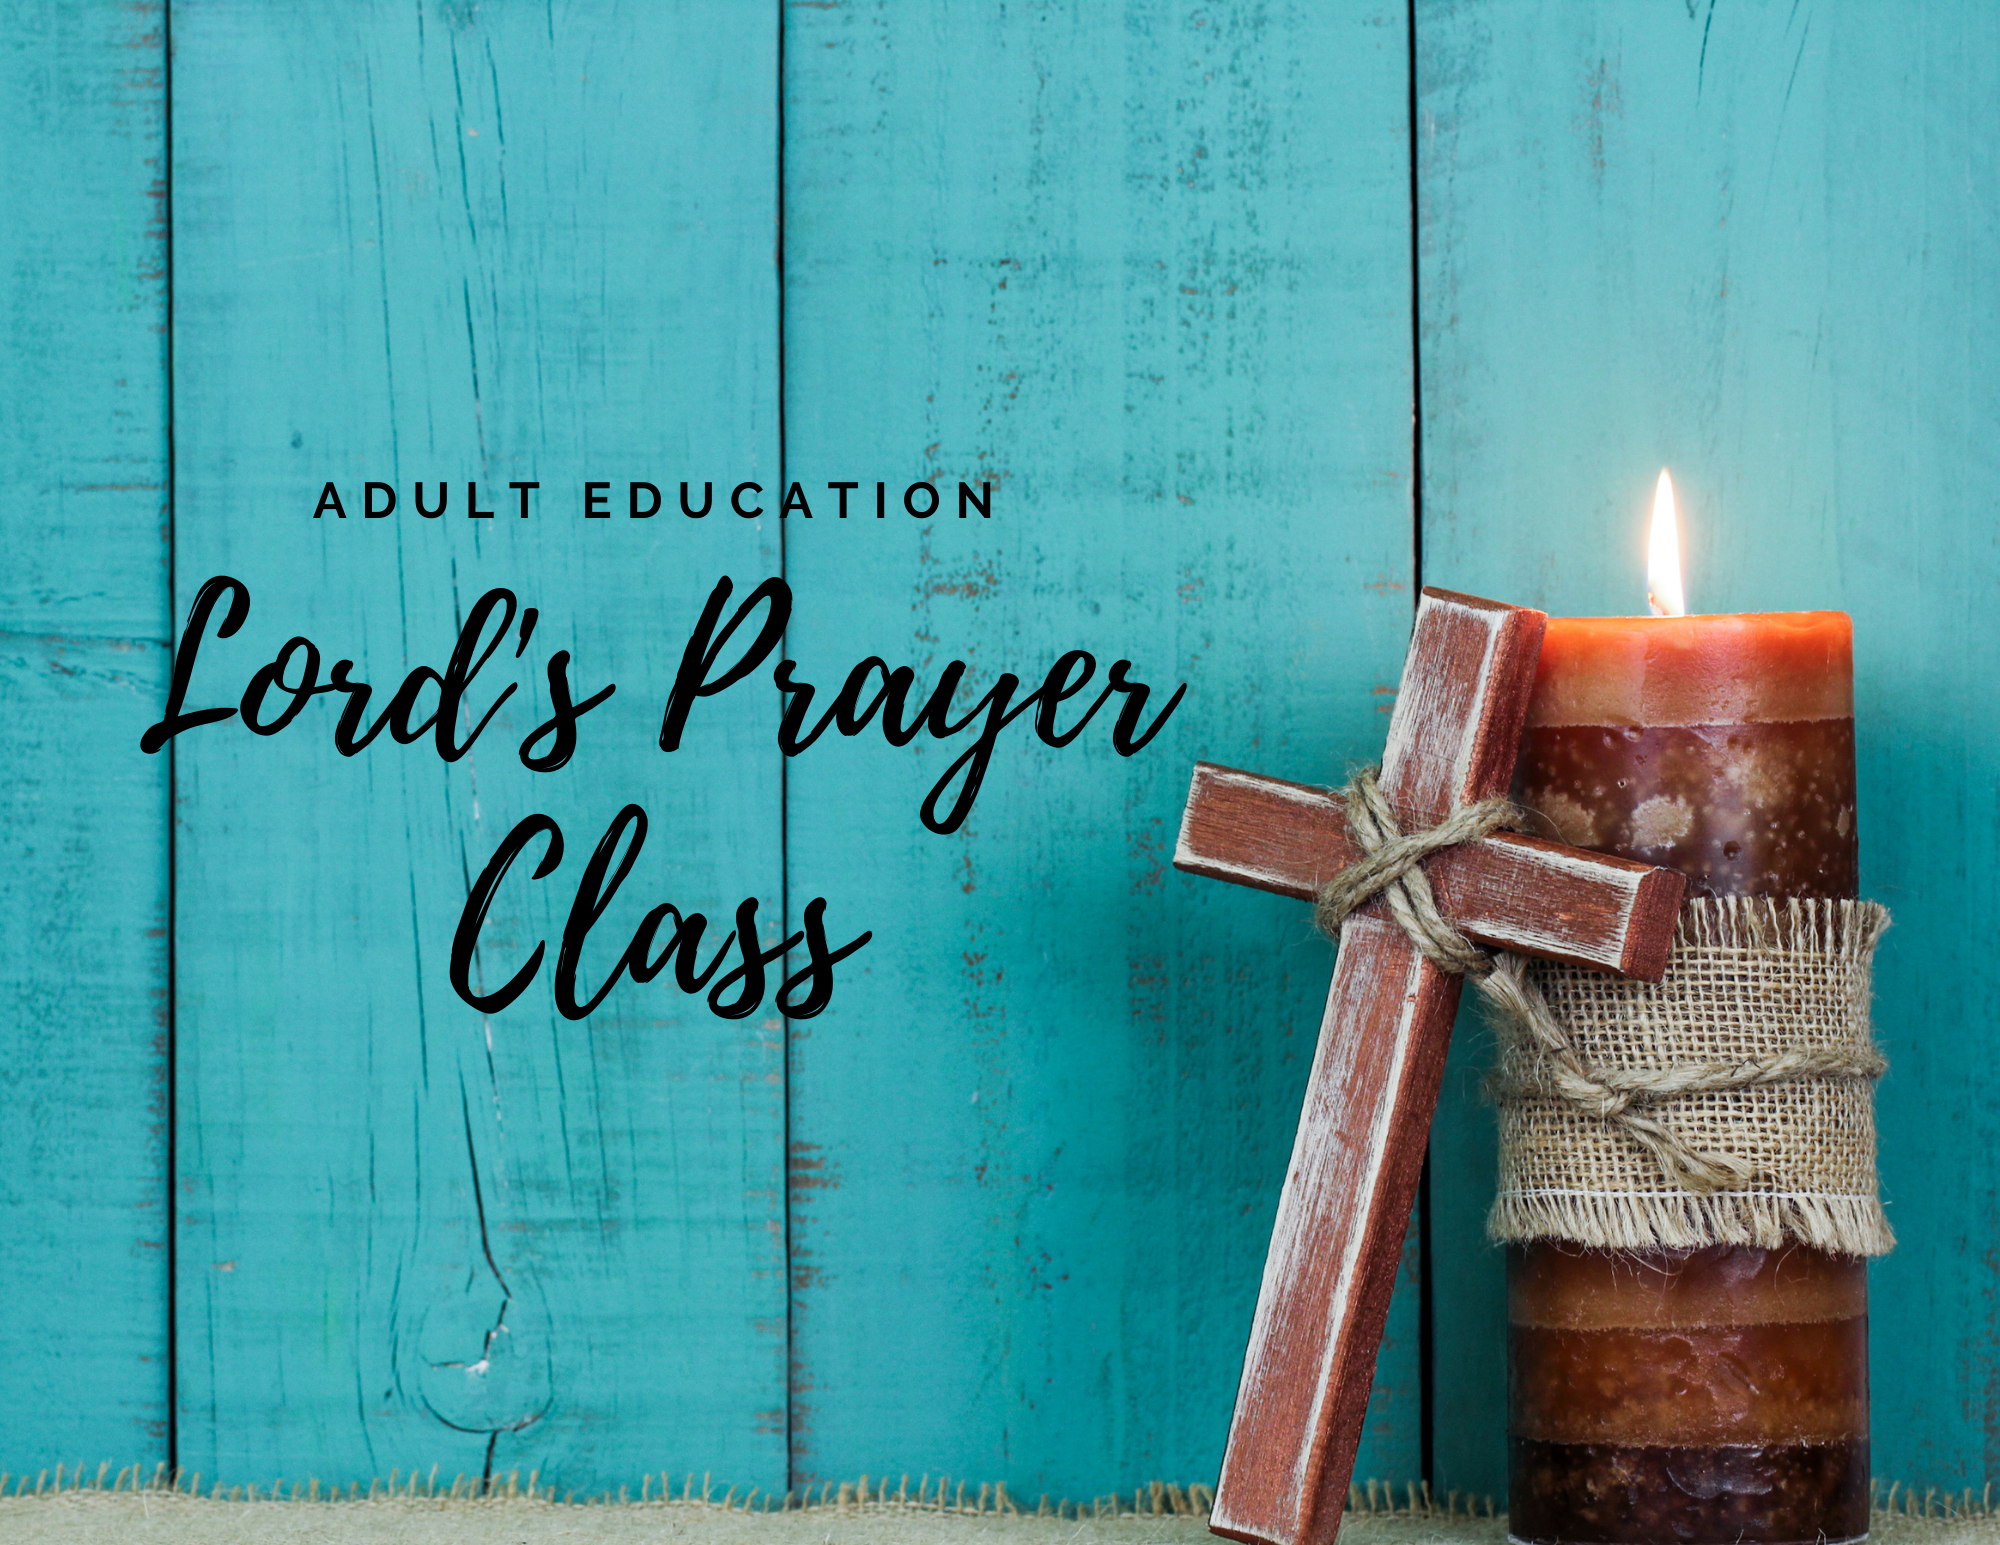 Adult Education: Lord's Prayer Class